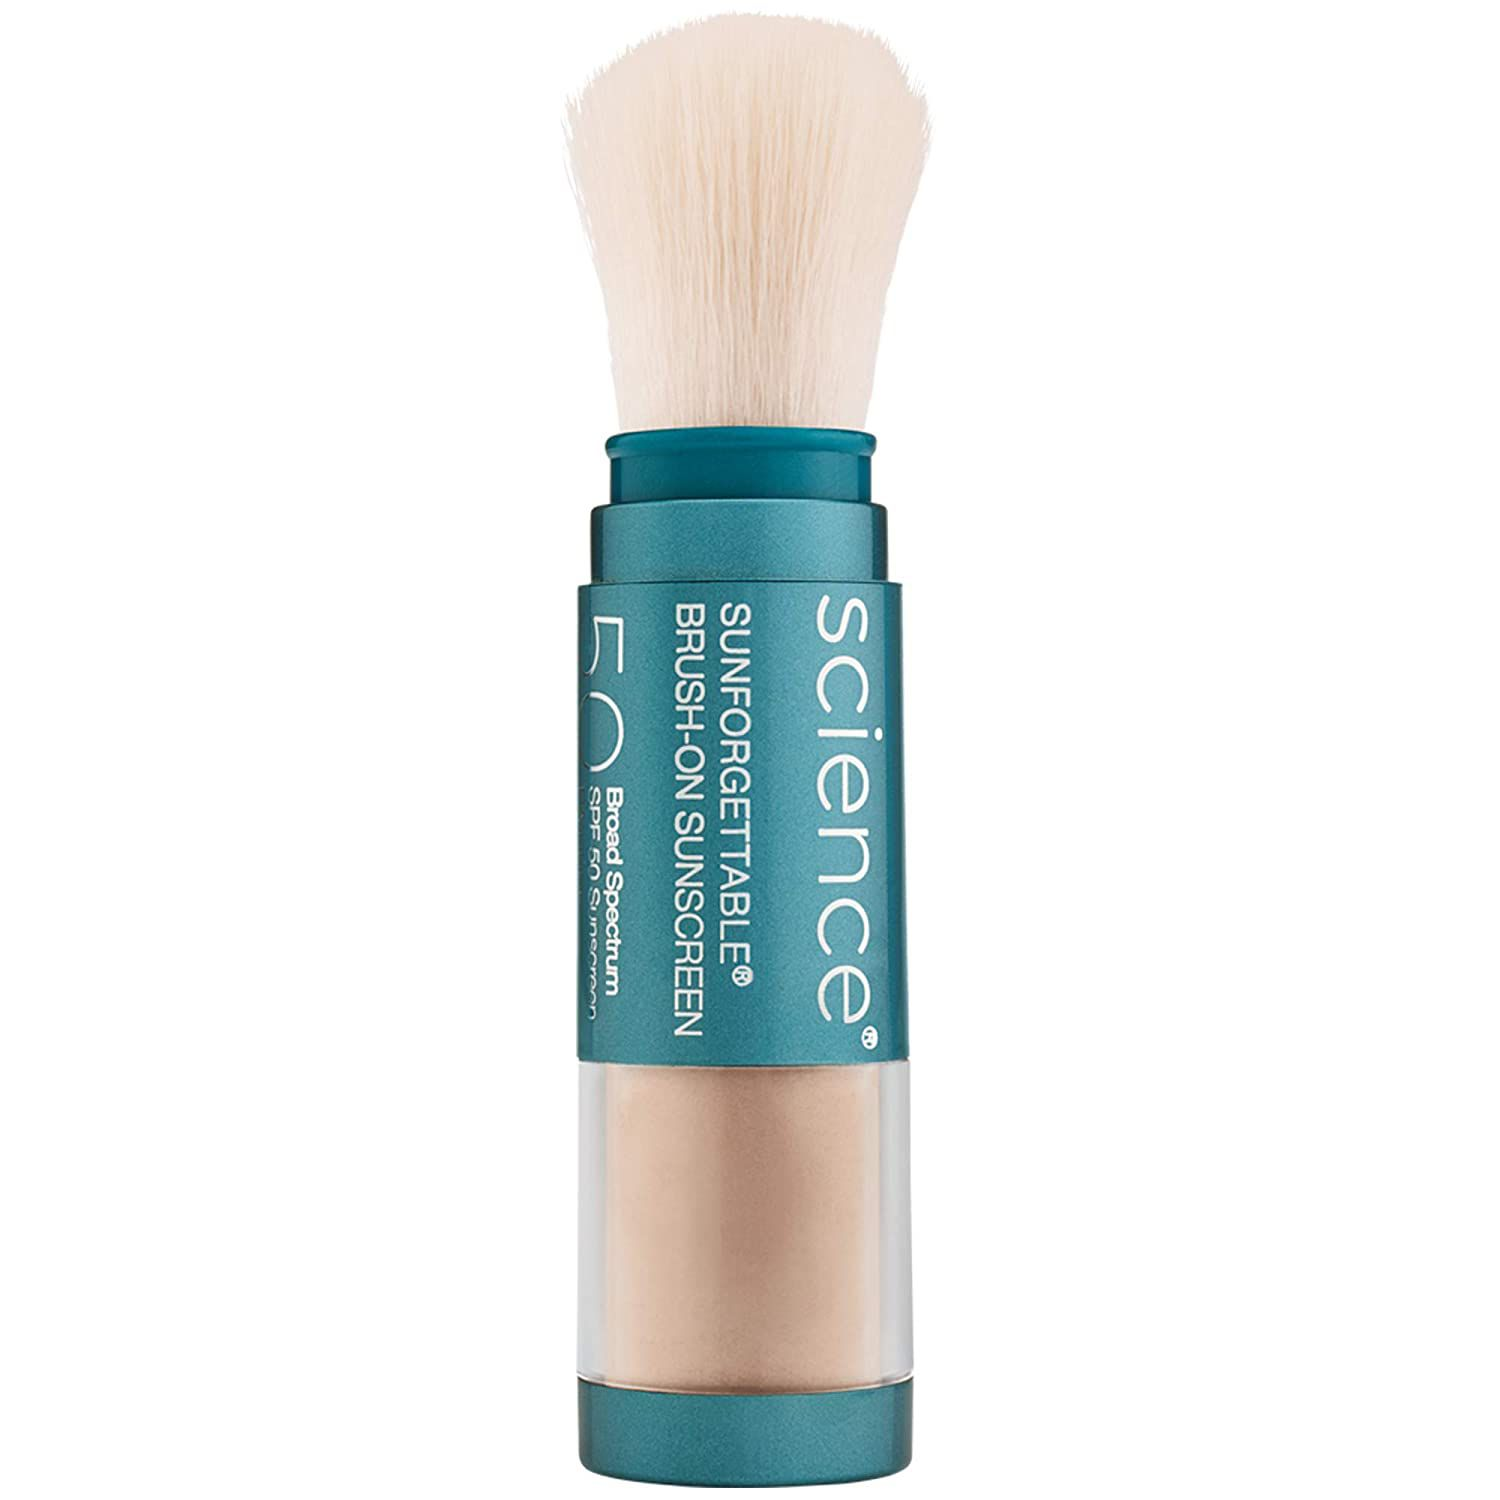 Colorescience Brush-On Sunscreen Mineral Powder